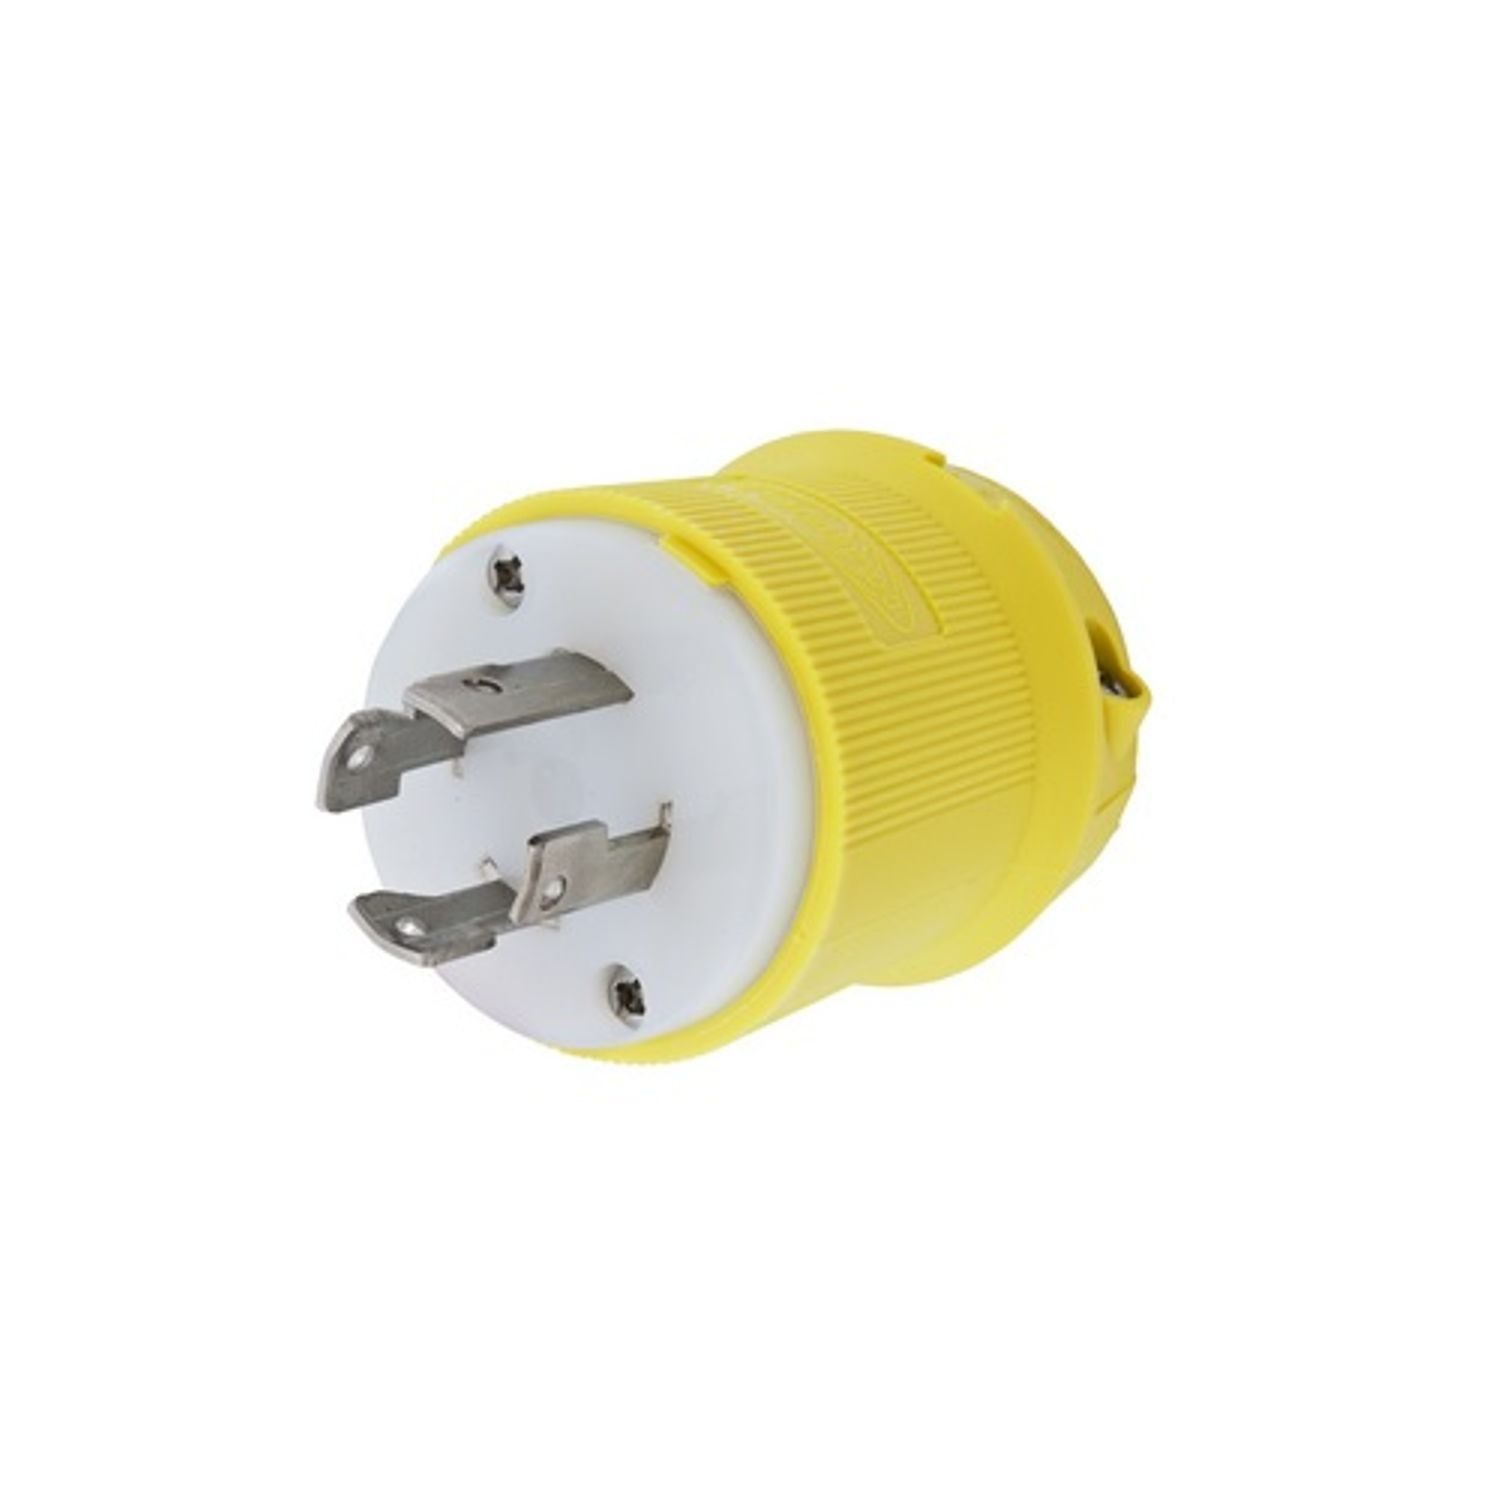 hight resolution of wiring device kellems twist lock insulgrip hbl27cm31 3 phase corrosion resistant grounding male standard locking plug 480 vac 30 a 3 poles 4 wires